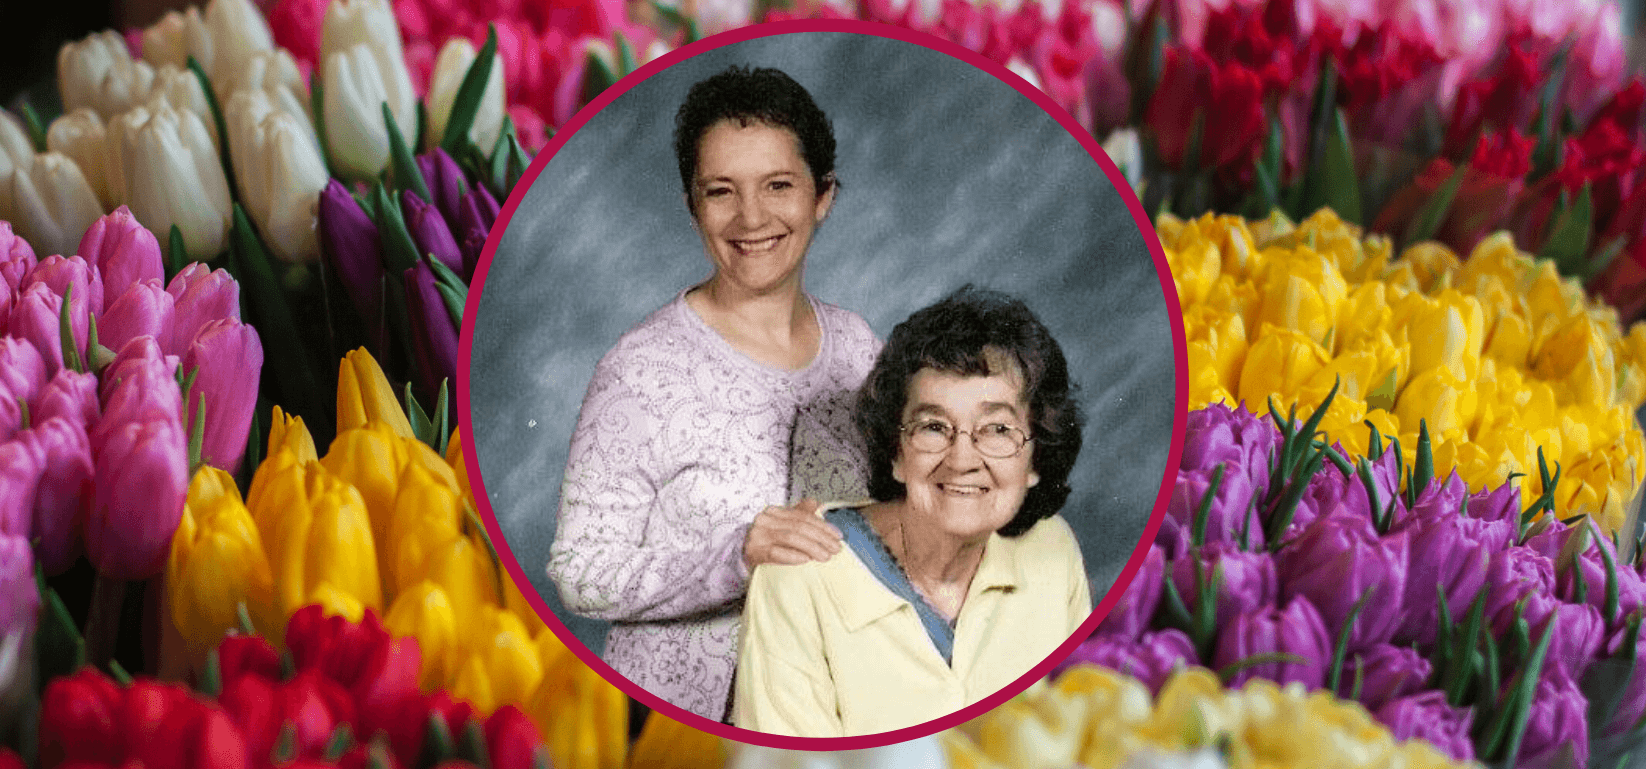 Image of Amy Bovaird and her Mom surrounded by tulips